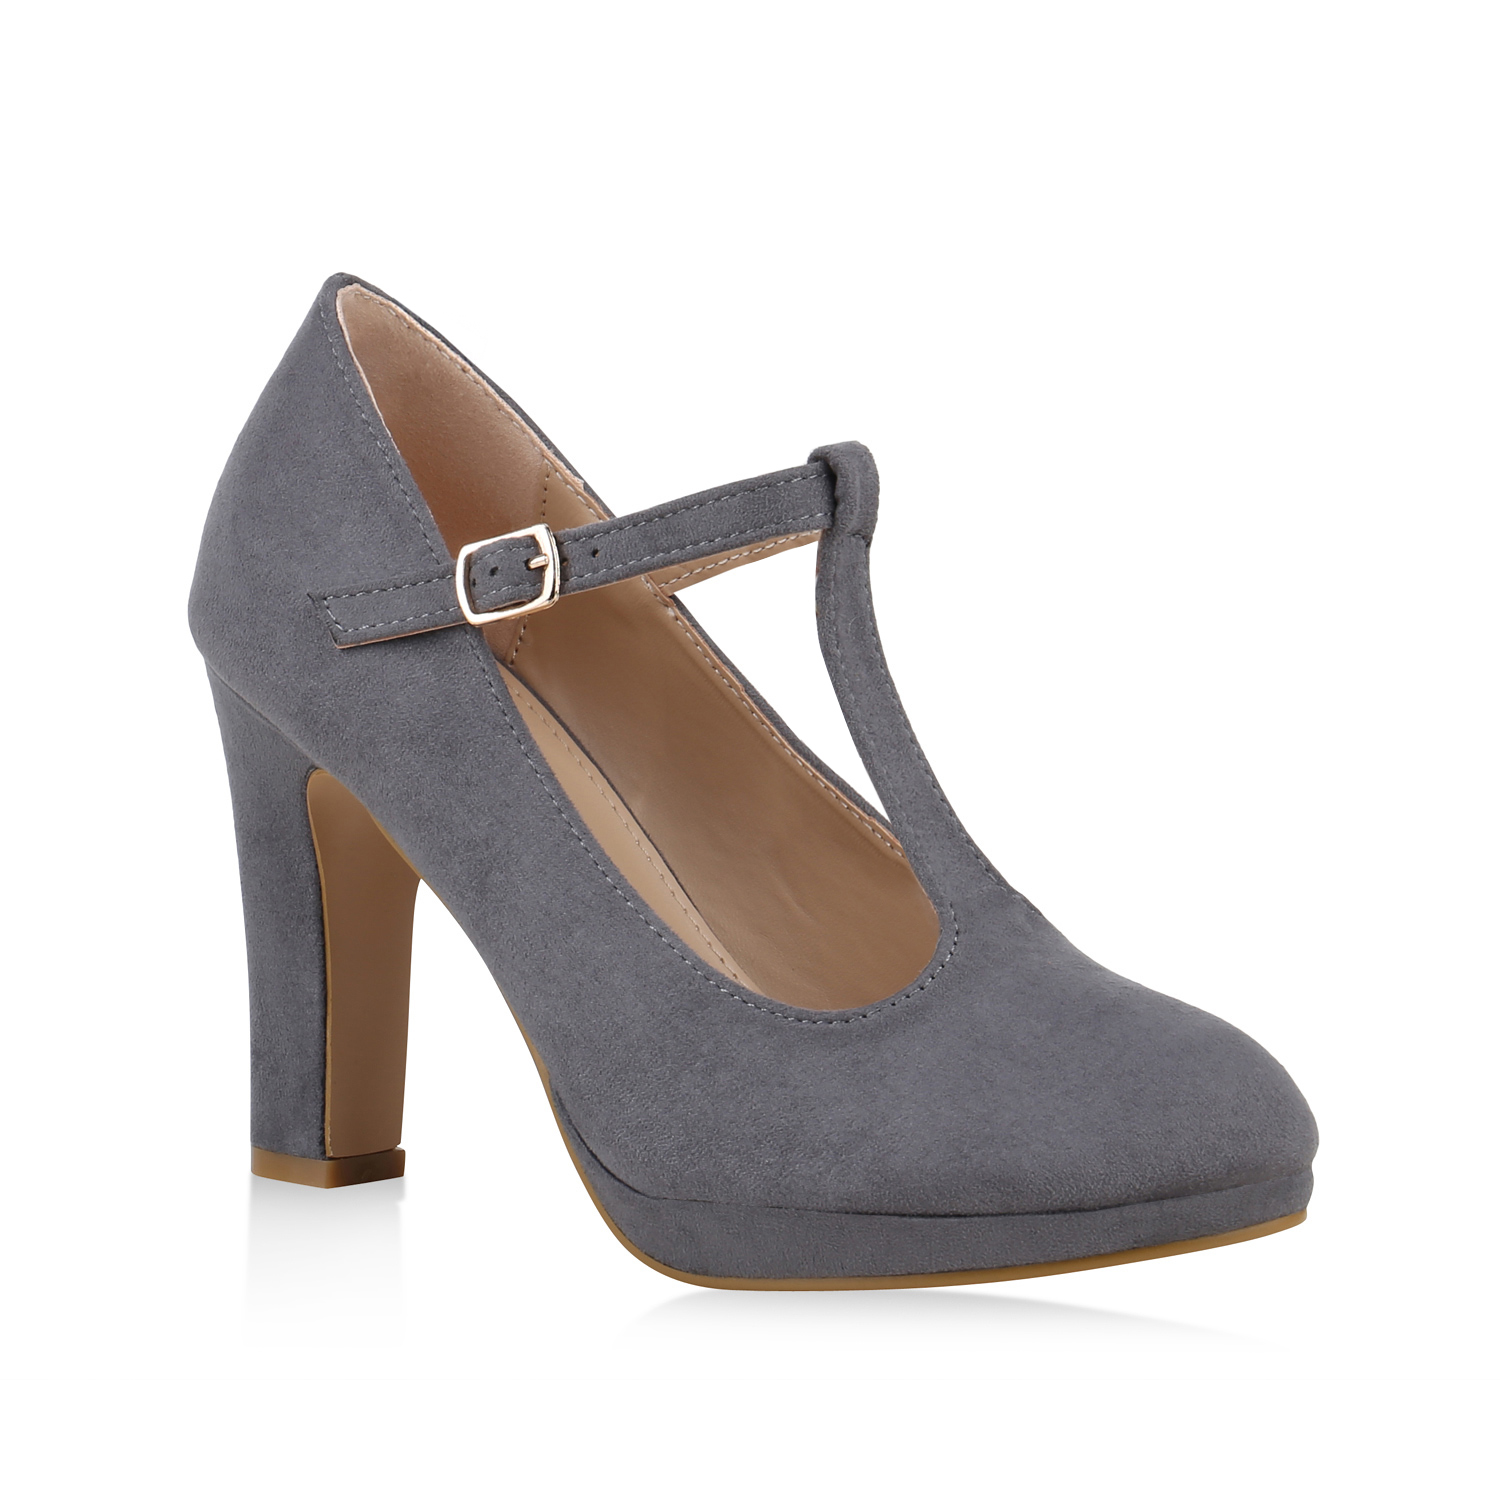 Damen Pumps Mary Janes - Grau